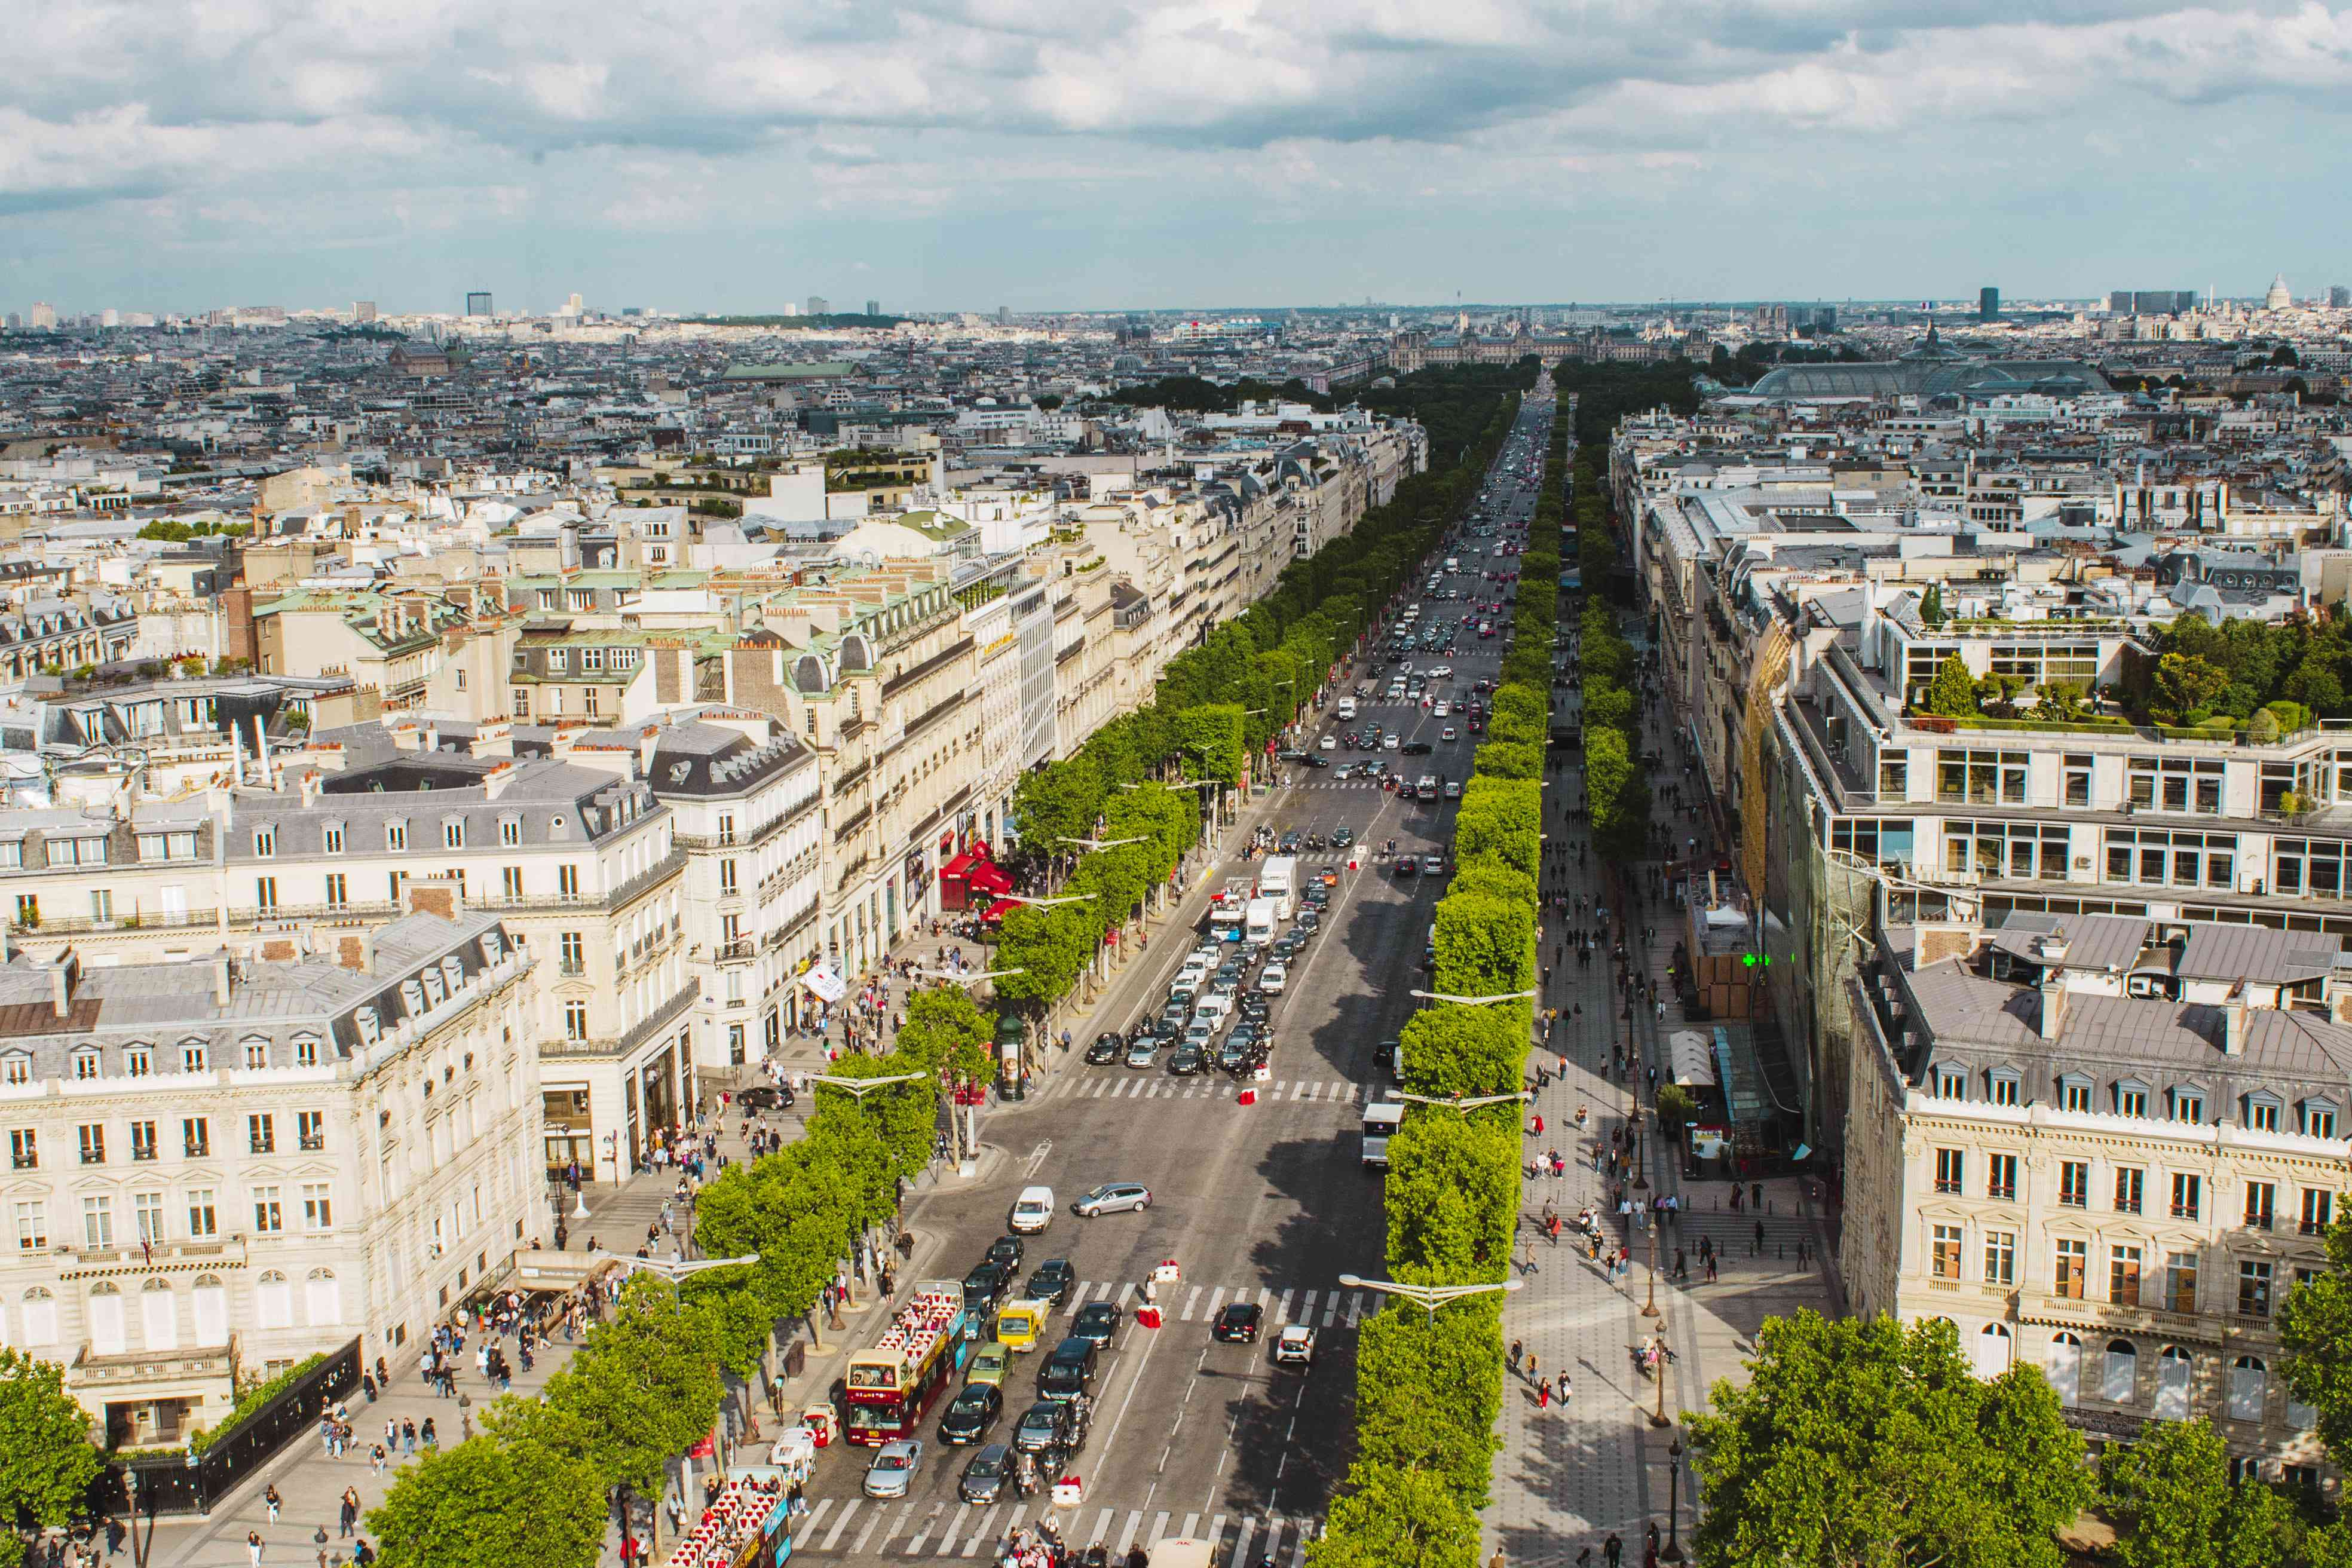 View from the Top of the Arc d' Triomphe